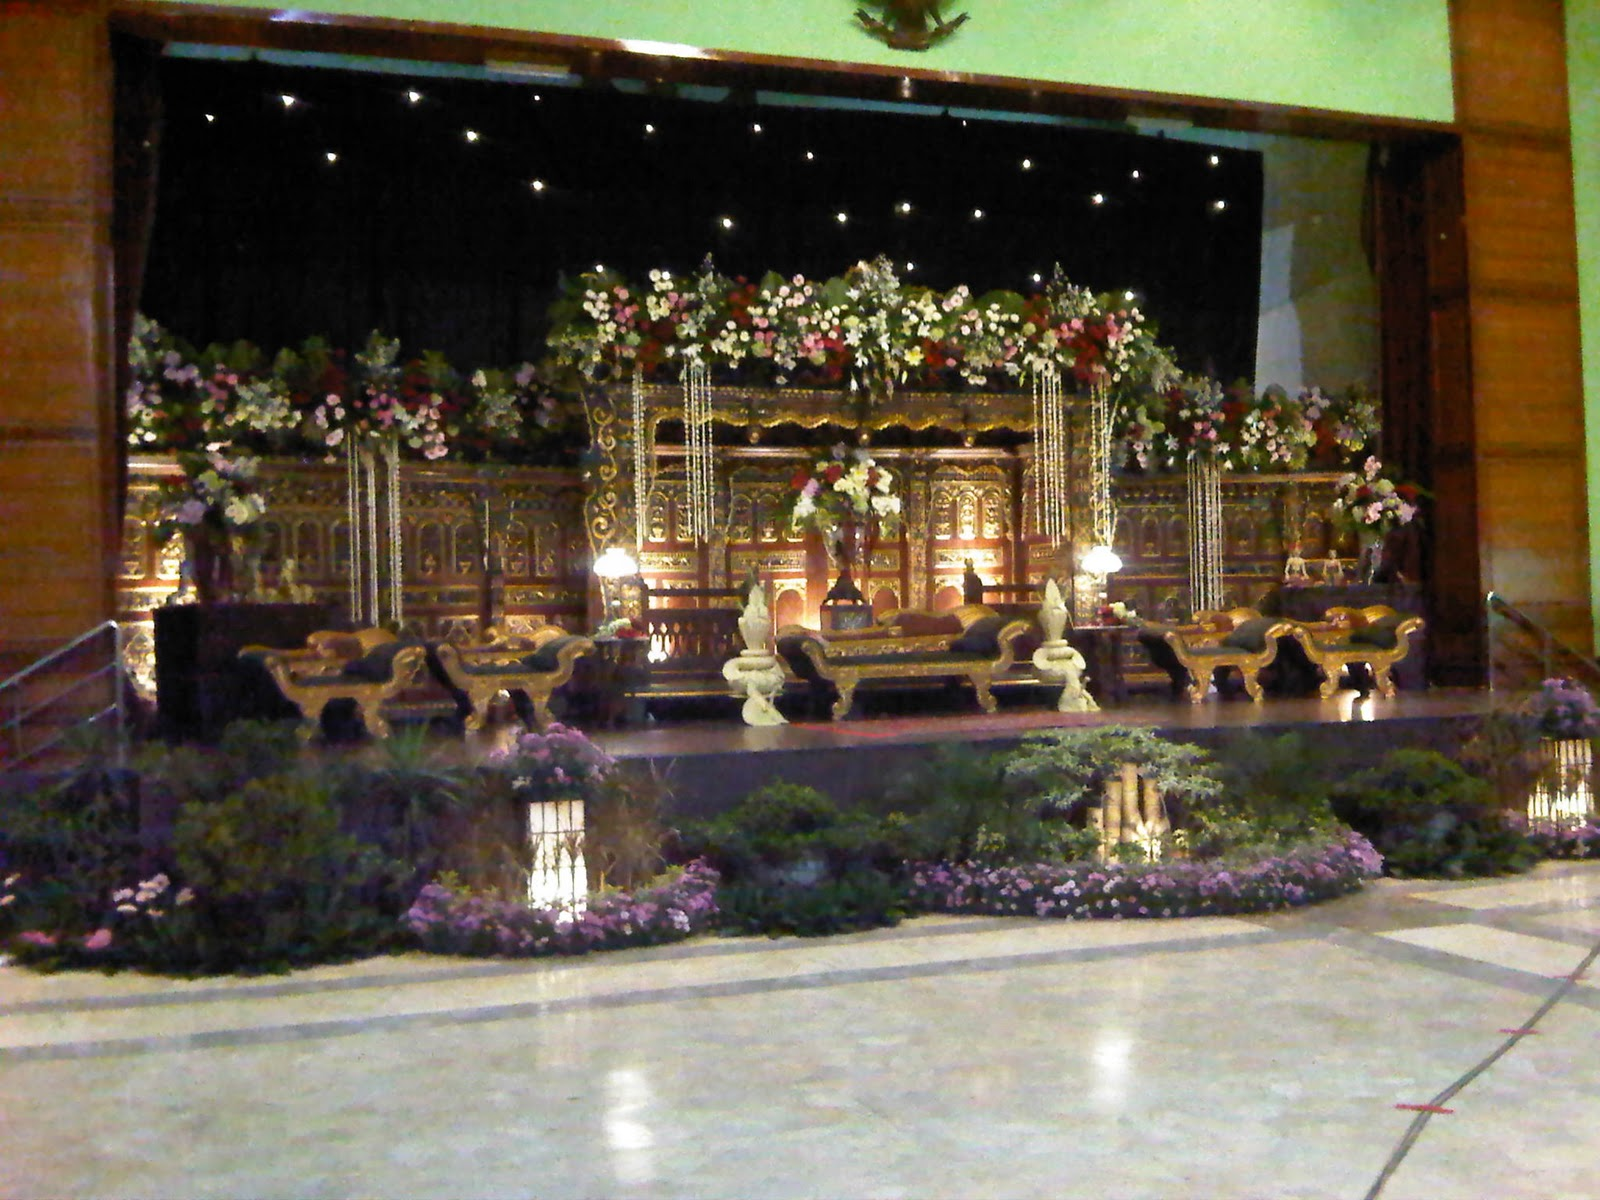 Caraka loka wedding